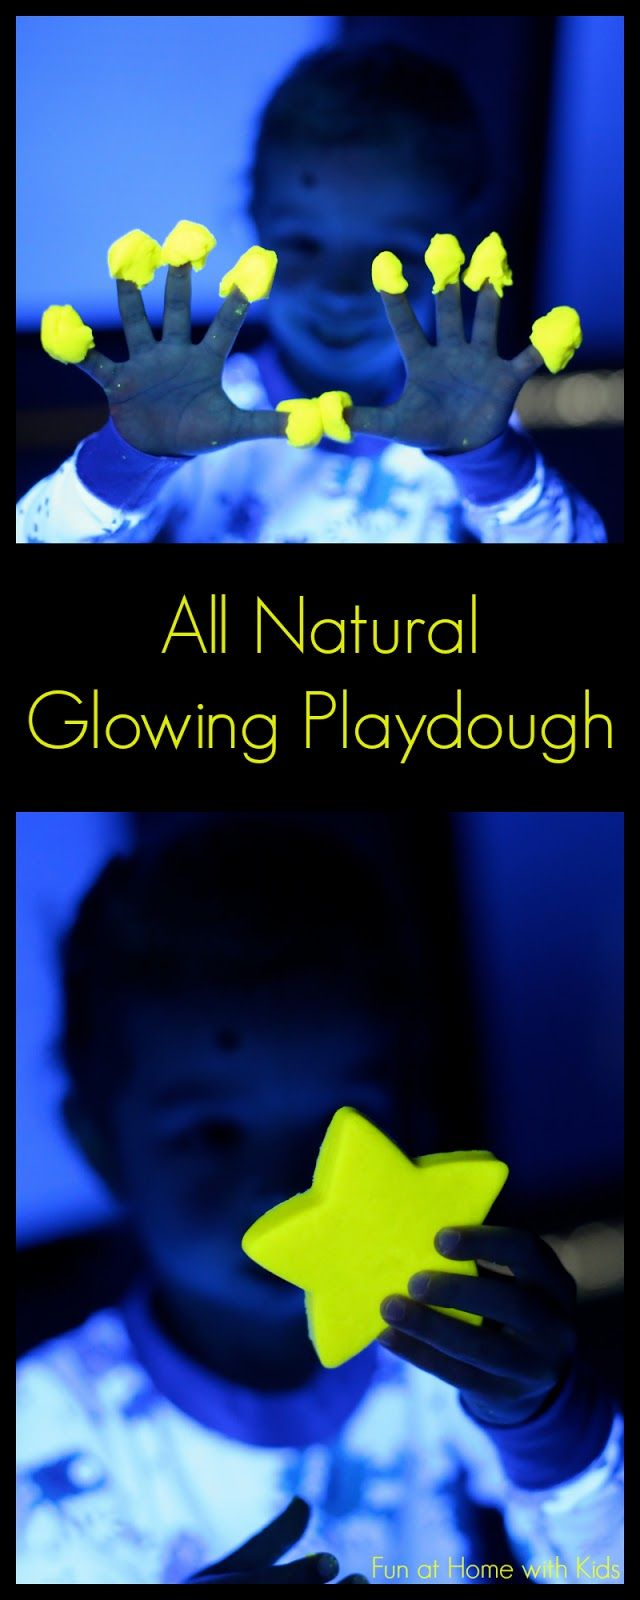 So awesome! All natural recipe for Glowing Playdough.